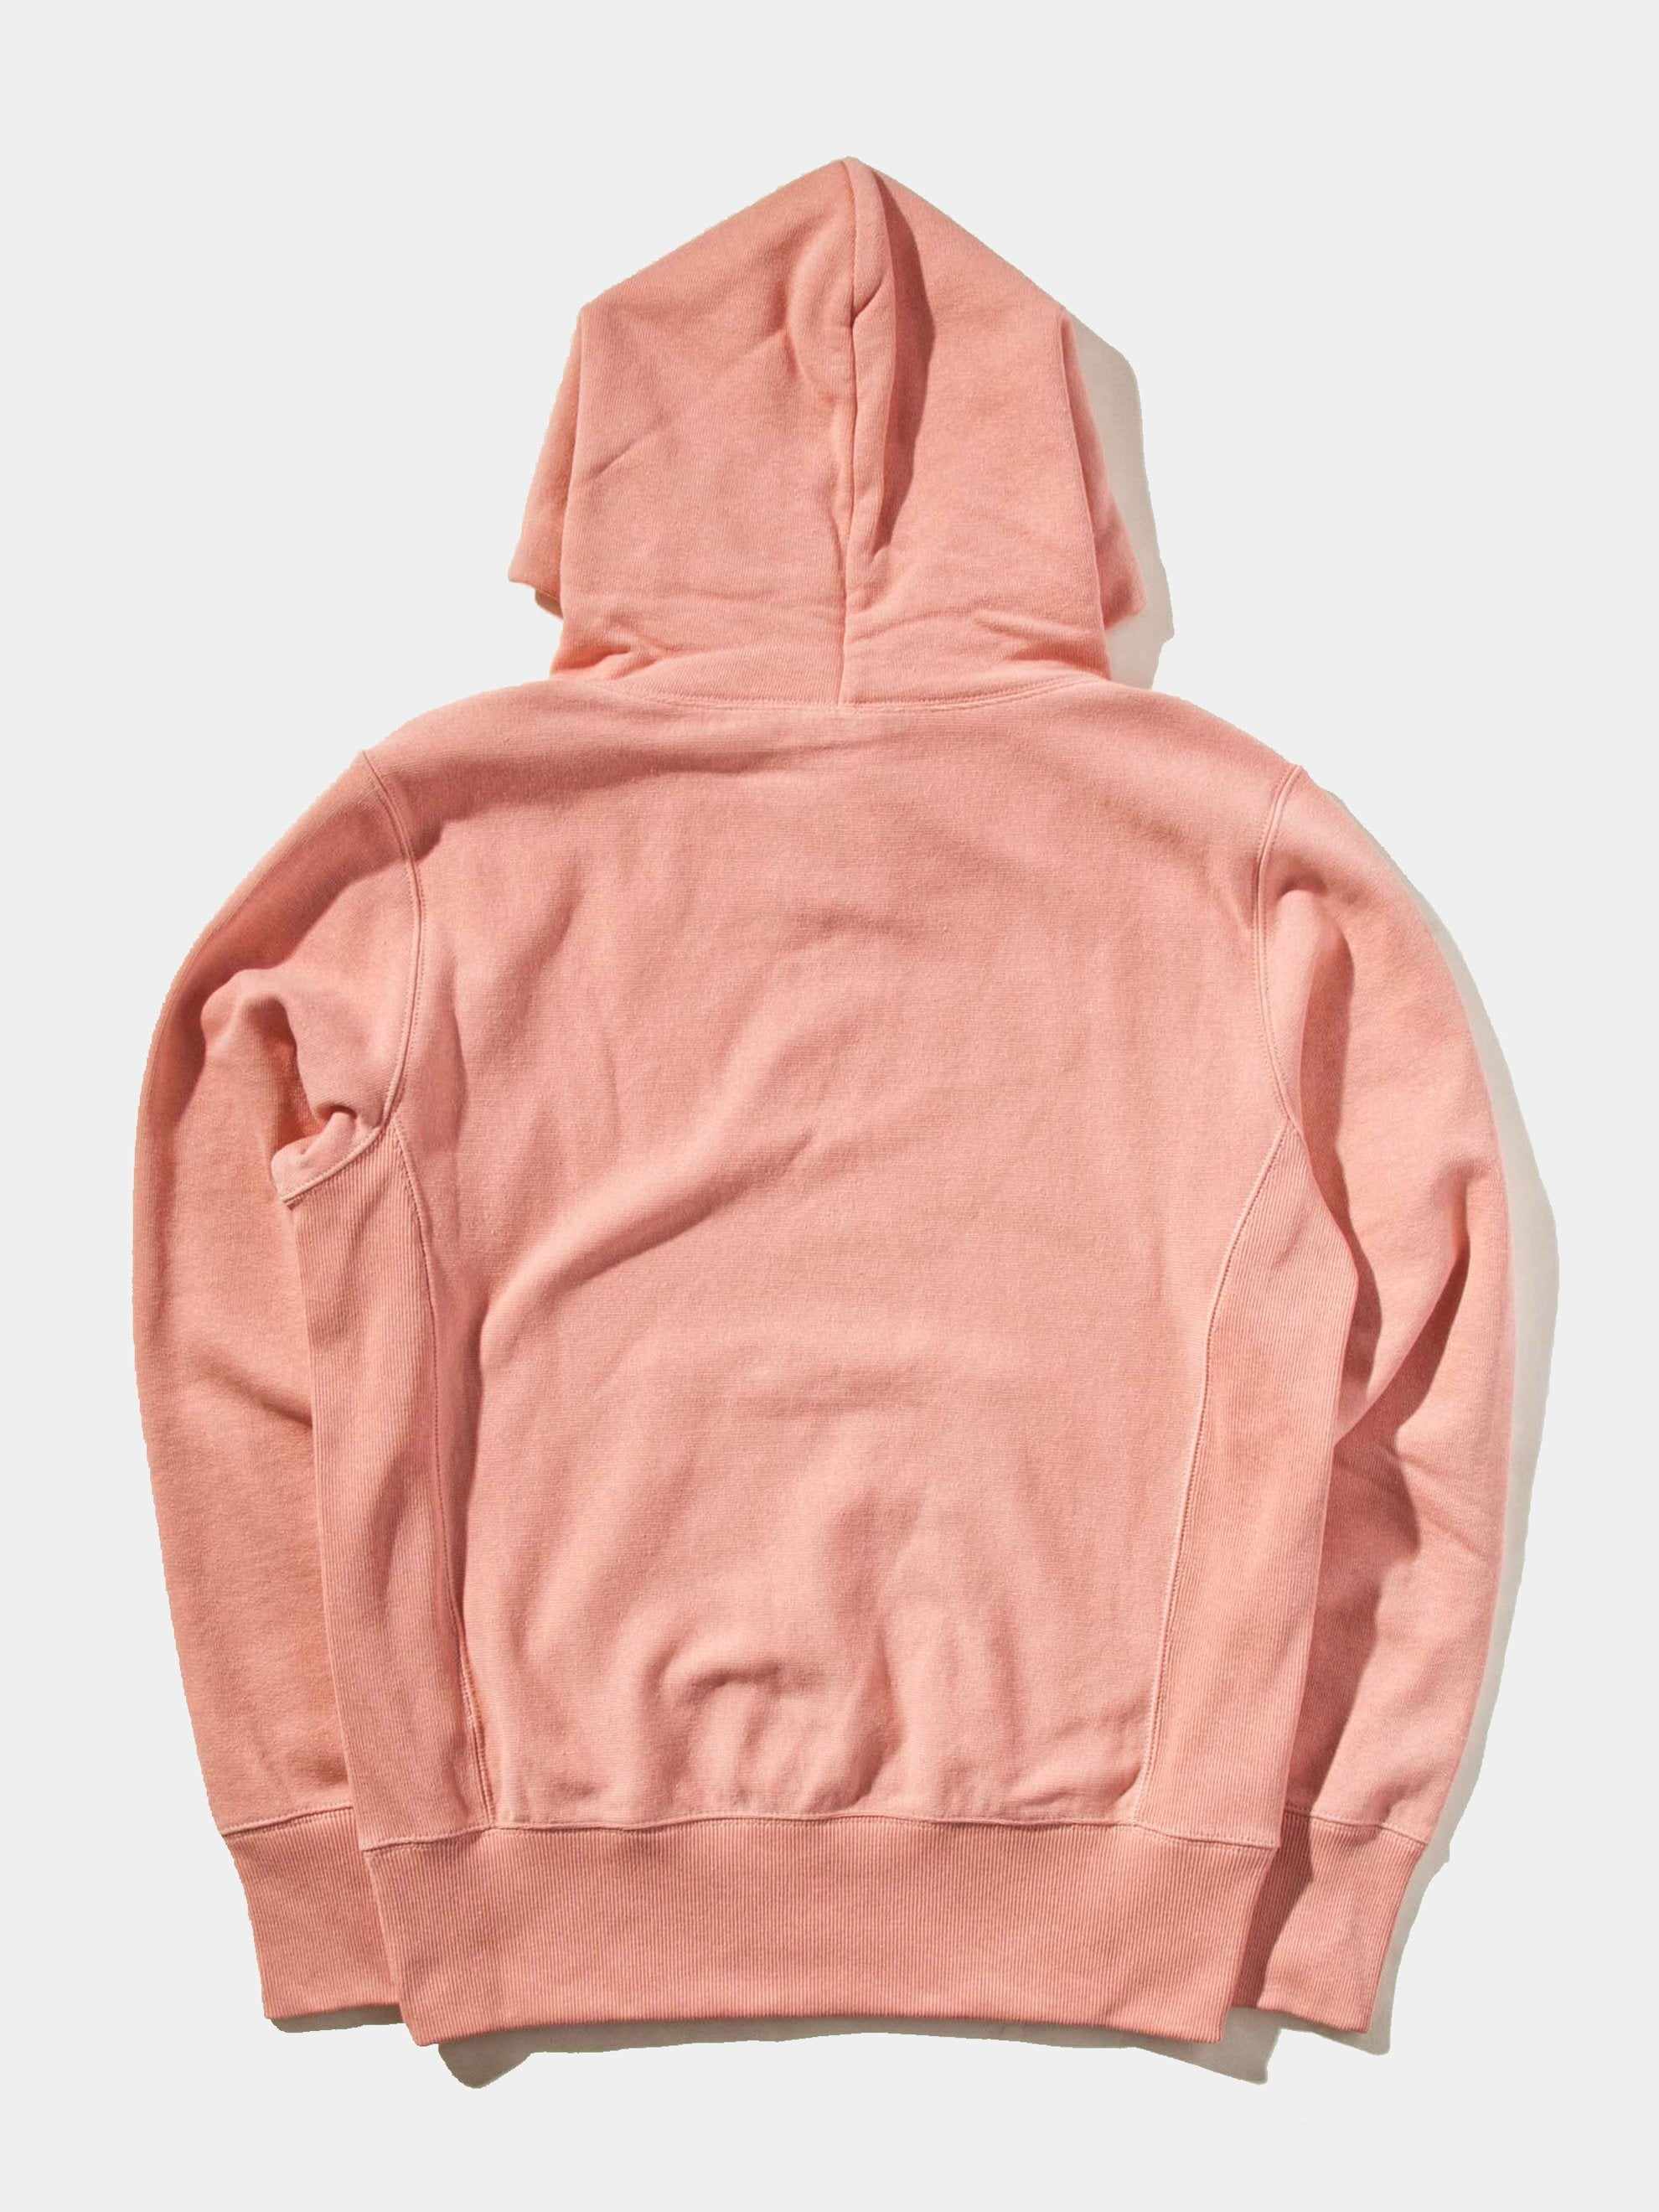 Cream Hooded Sweatshirt 7